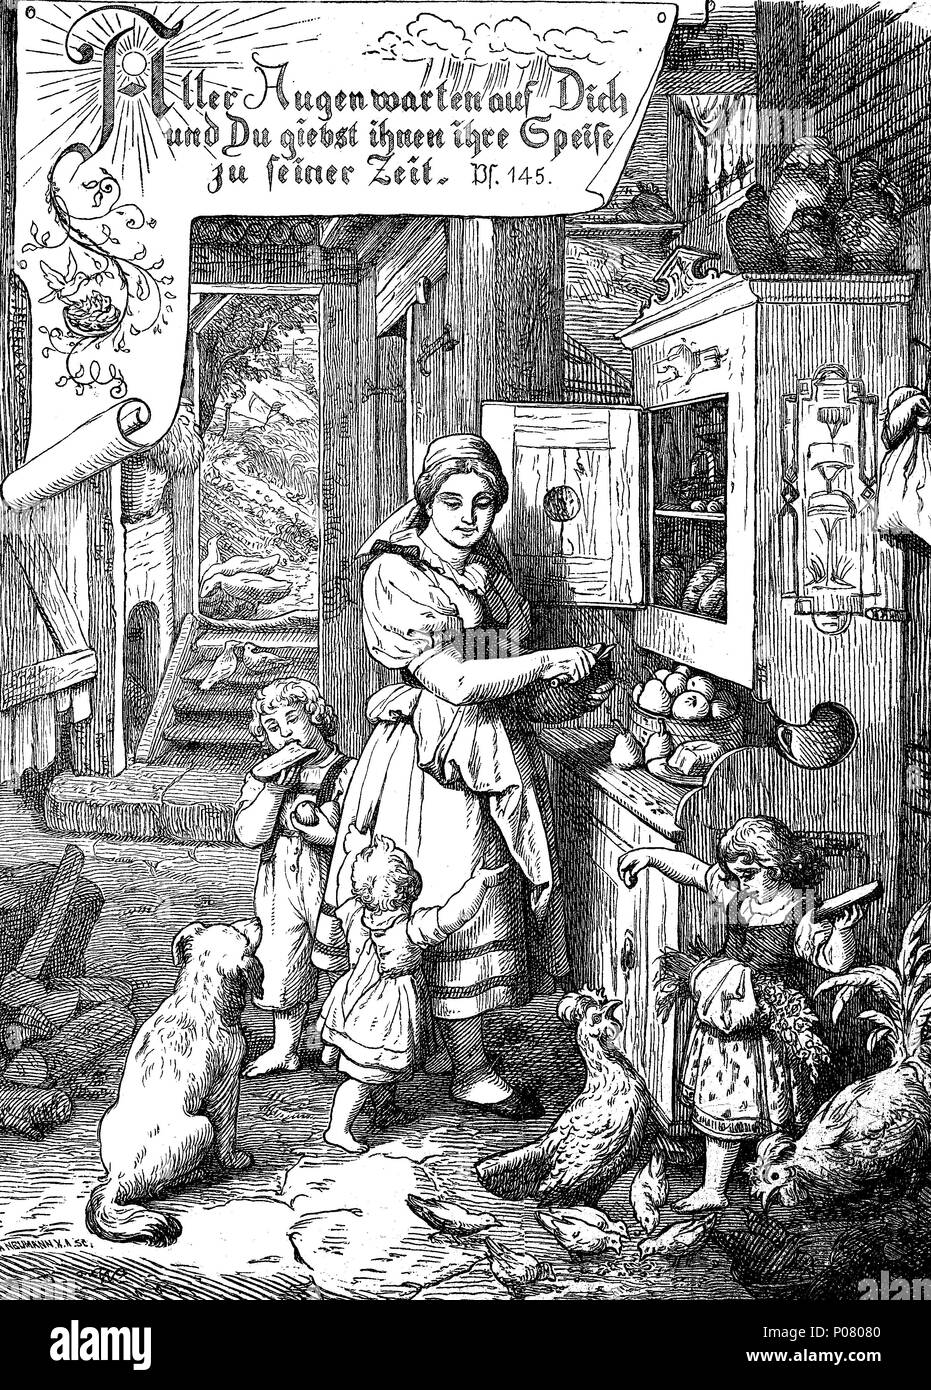 Family with children and pets in the kitchen, farm, middle ages, Familie mit Kindern und Haustieren in der Küche, Bauernhof, Mittelalter, digital improved reproduction of an original print from the year 1881 - Stock Image